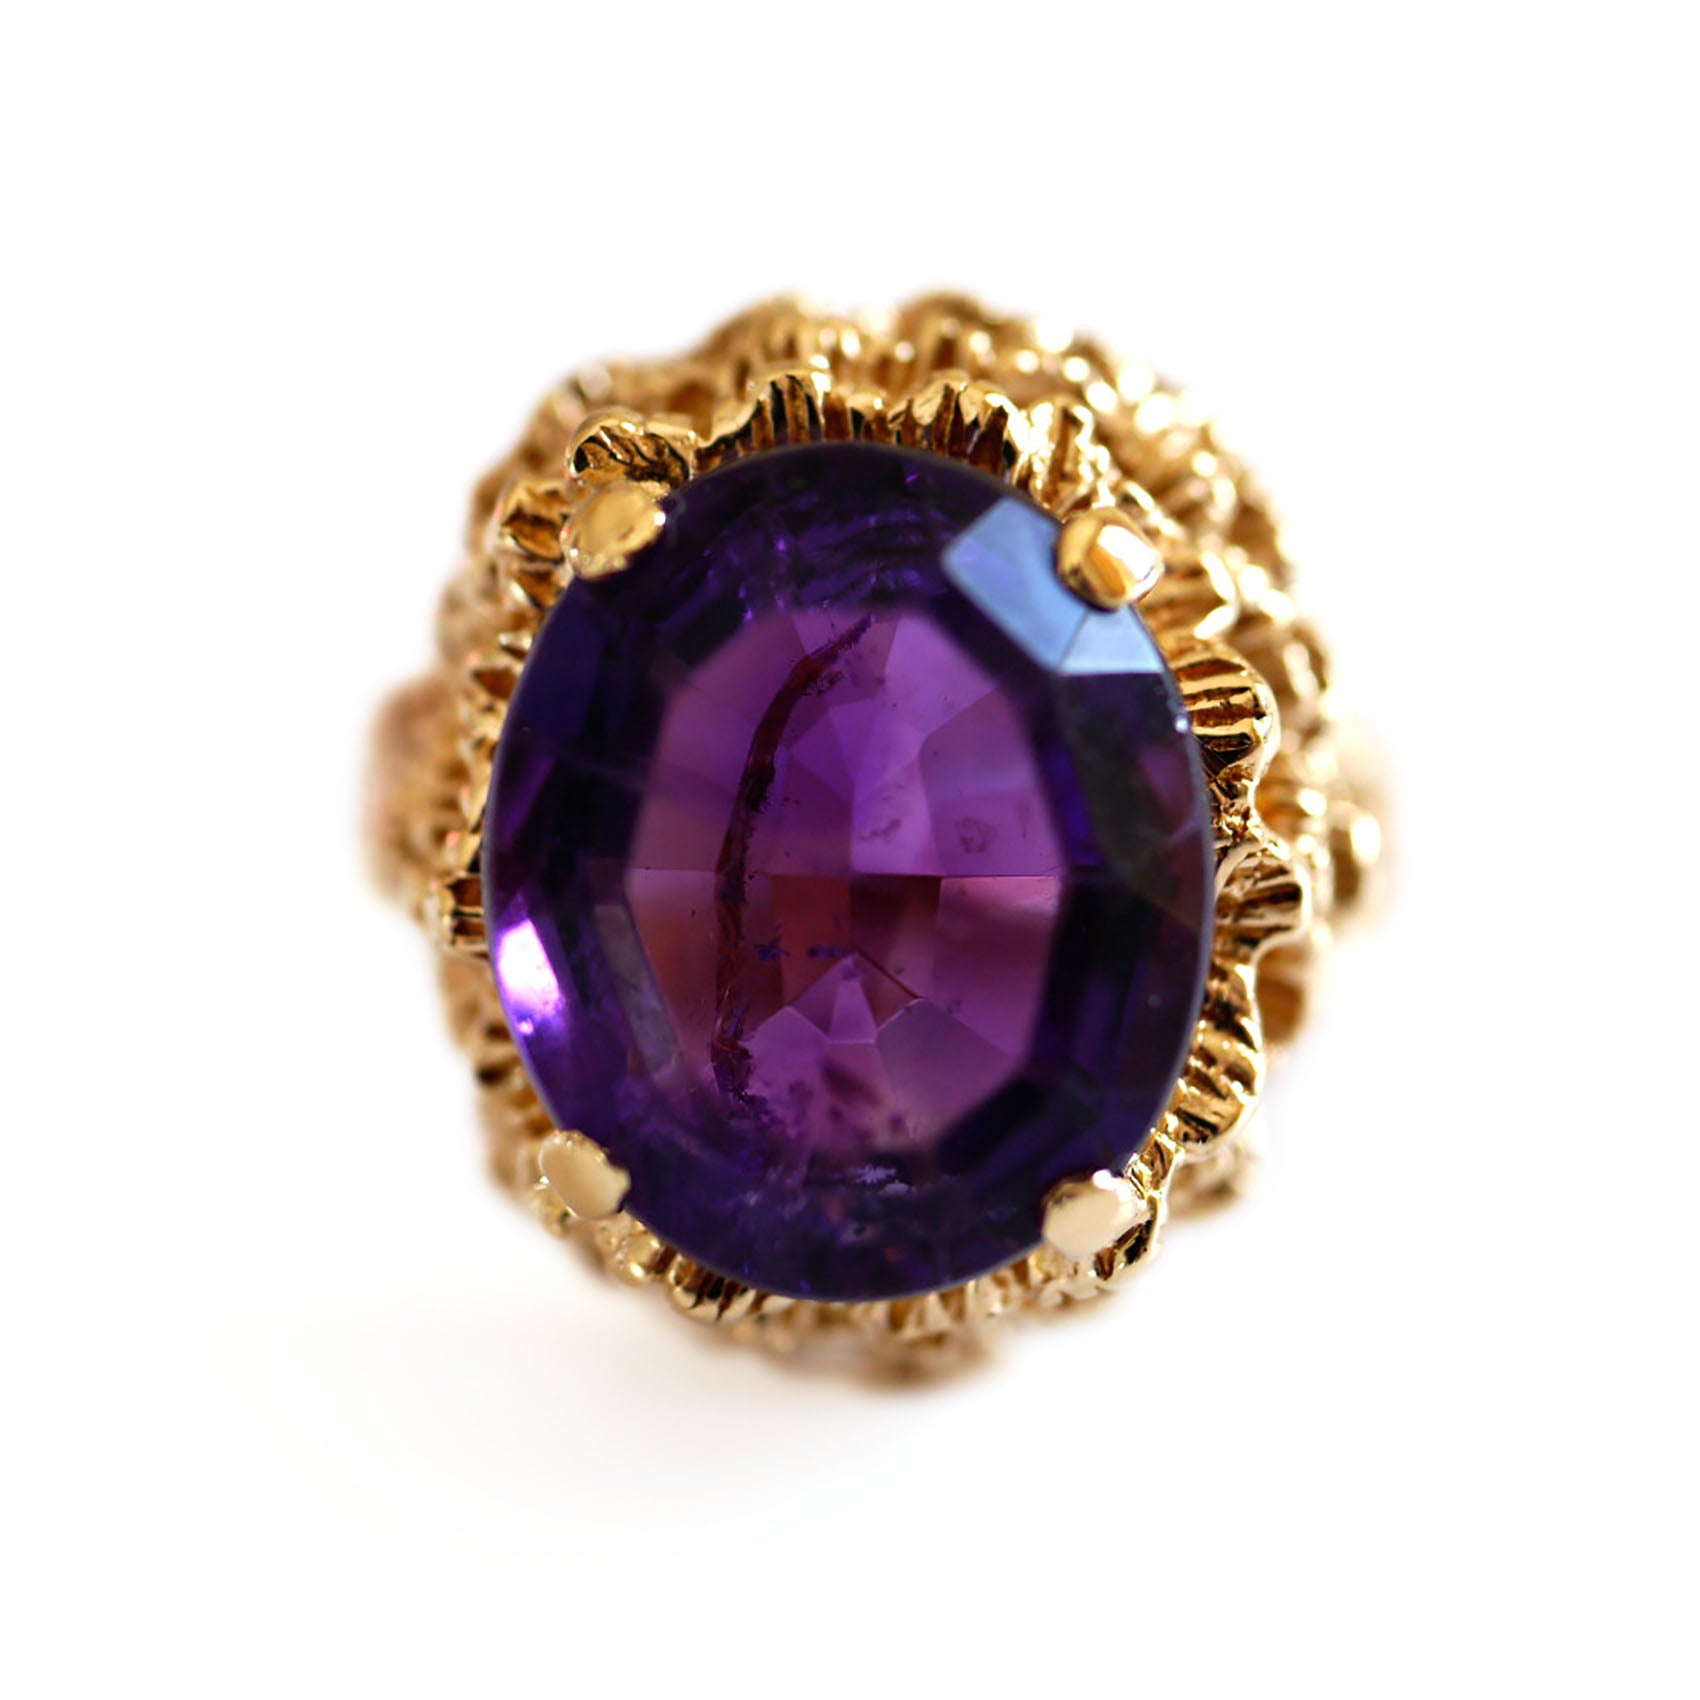 Amethyst Vintage Cocktail Ring 1960s